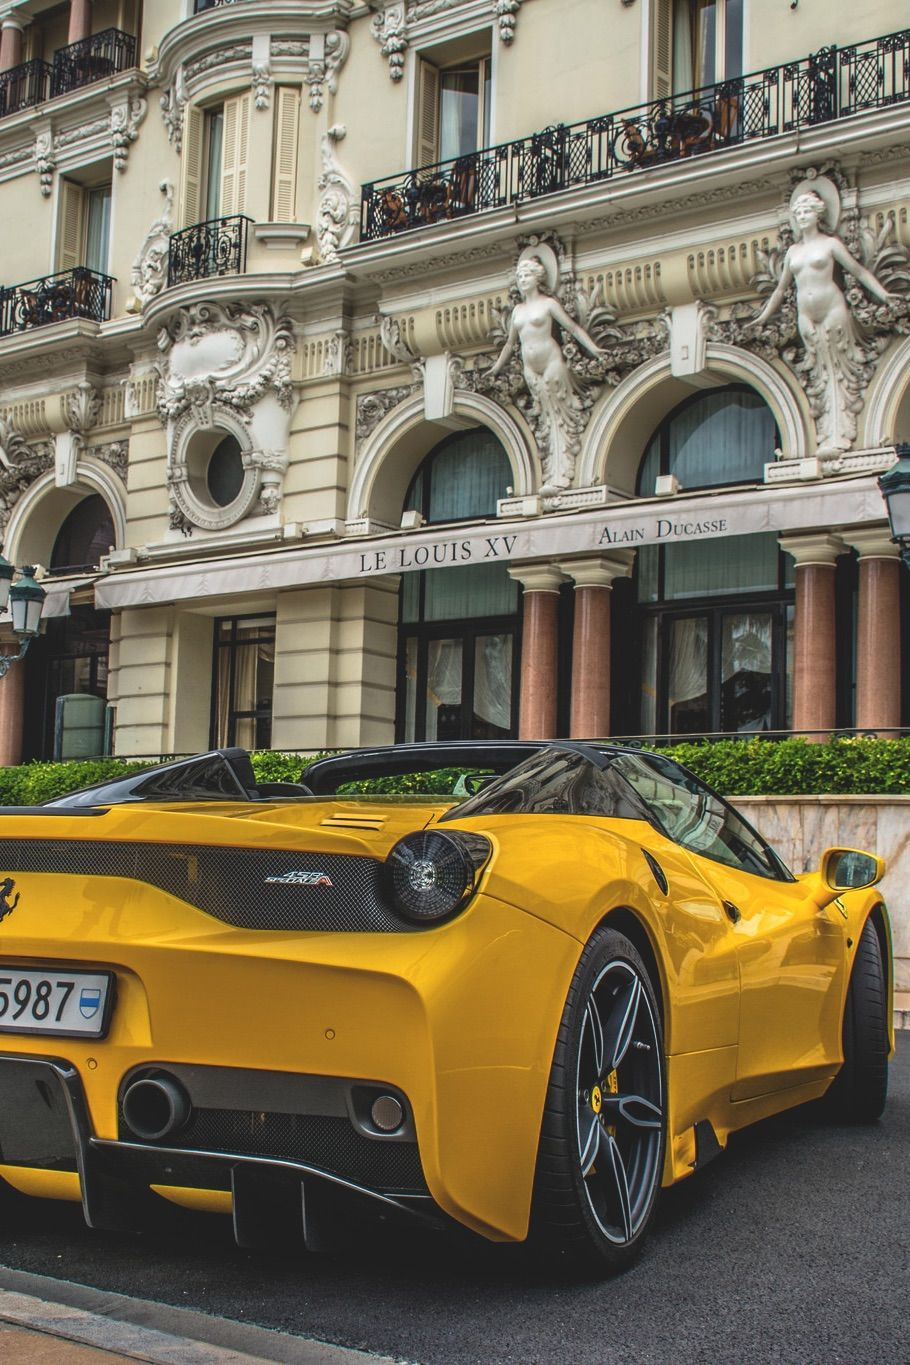 Ferrari 458 Speciale Aperta With Images Sports Cars Luxury